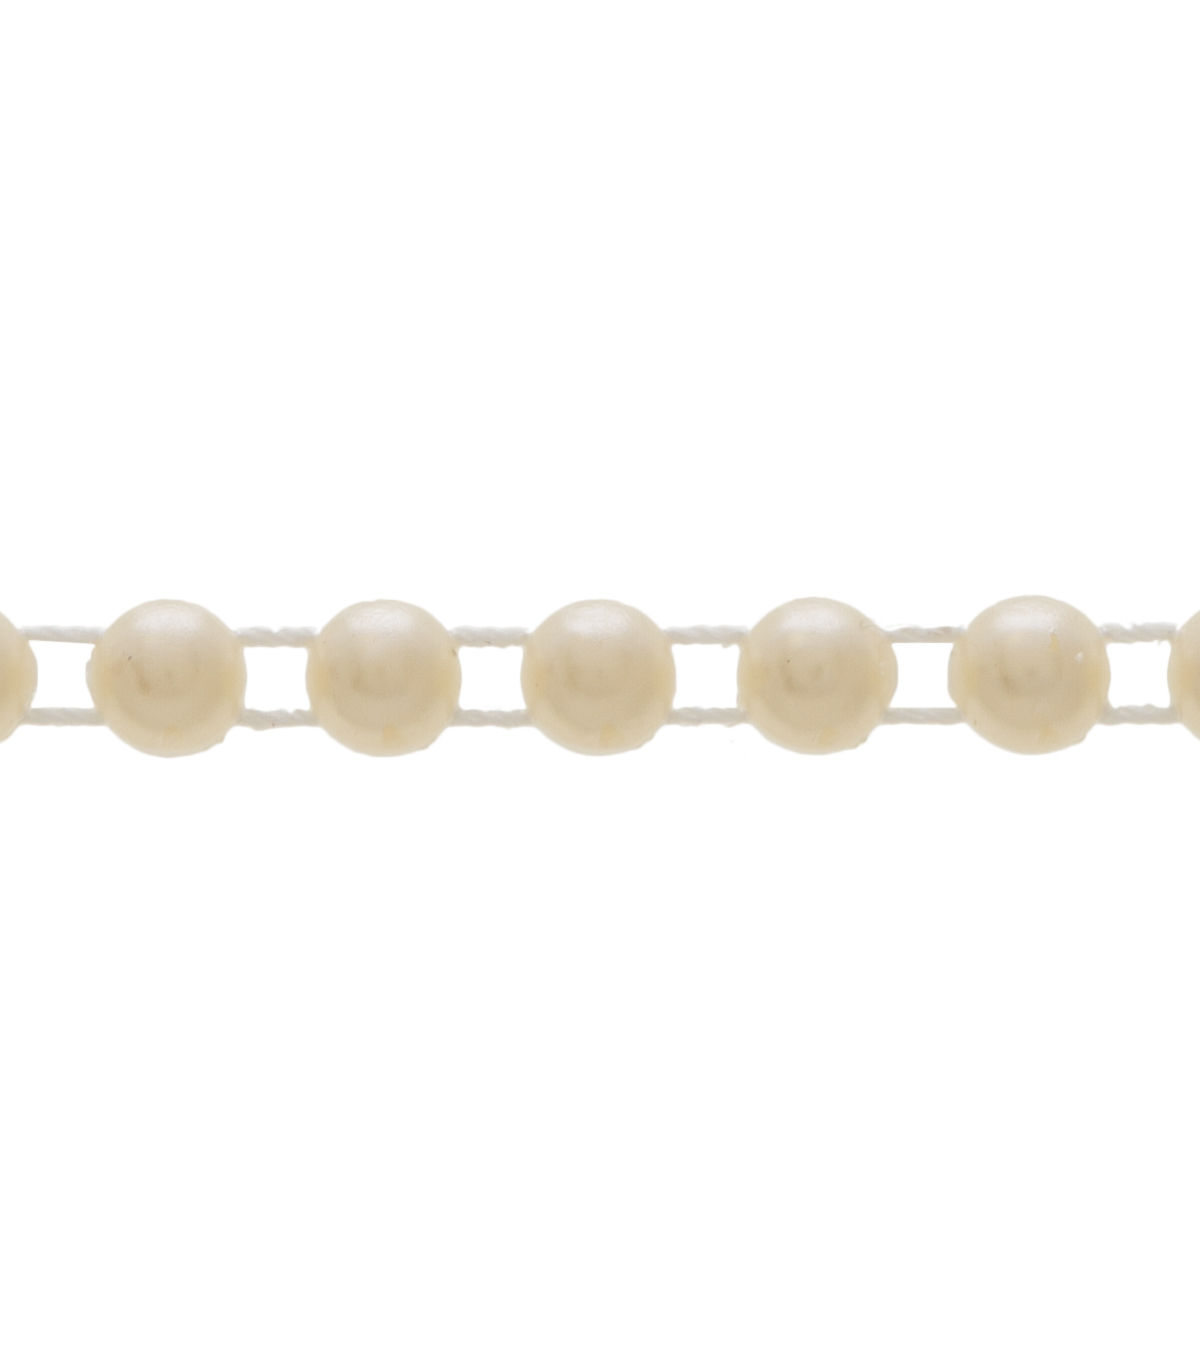 6mm Half Pearl Ivory Apparel Trim